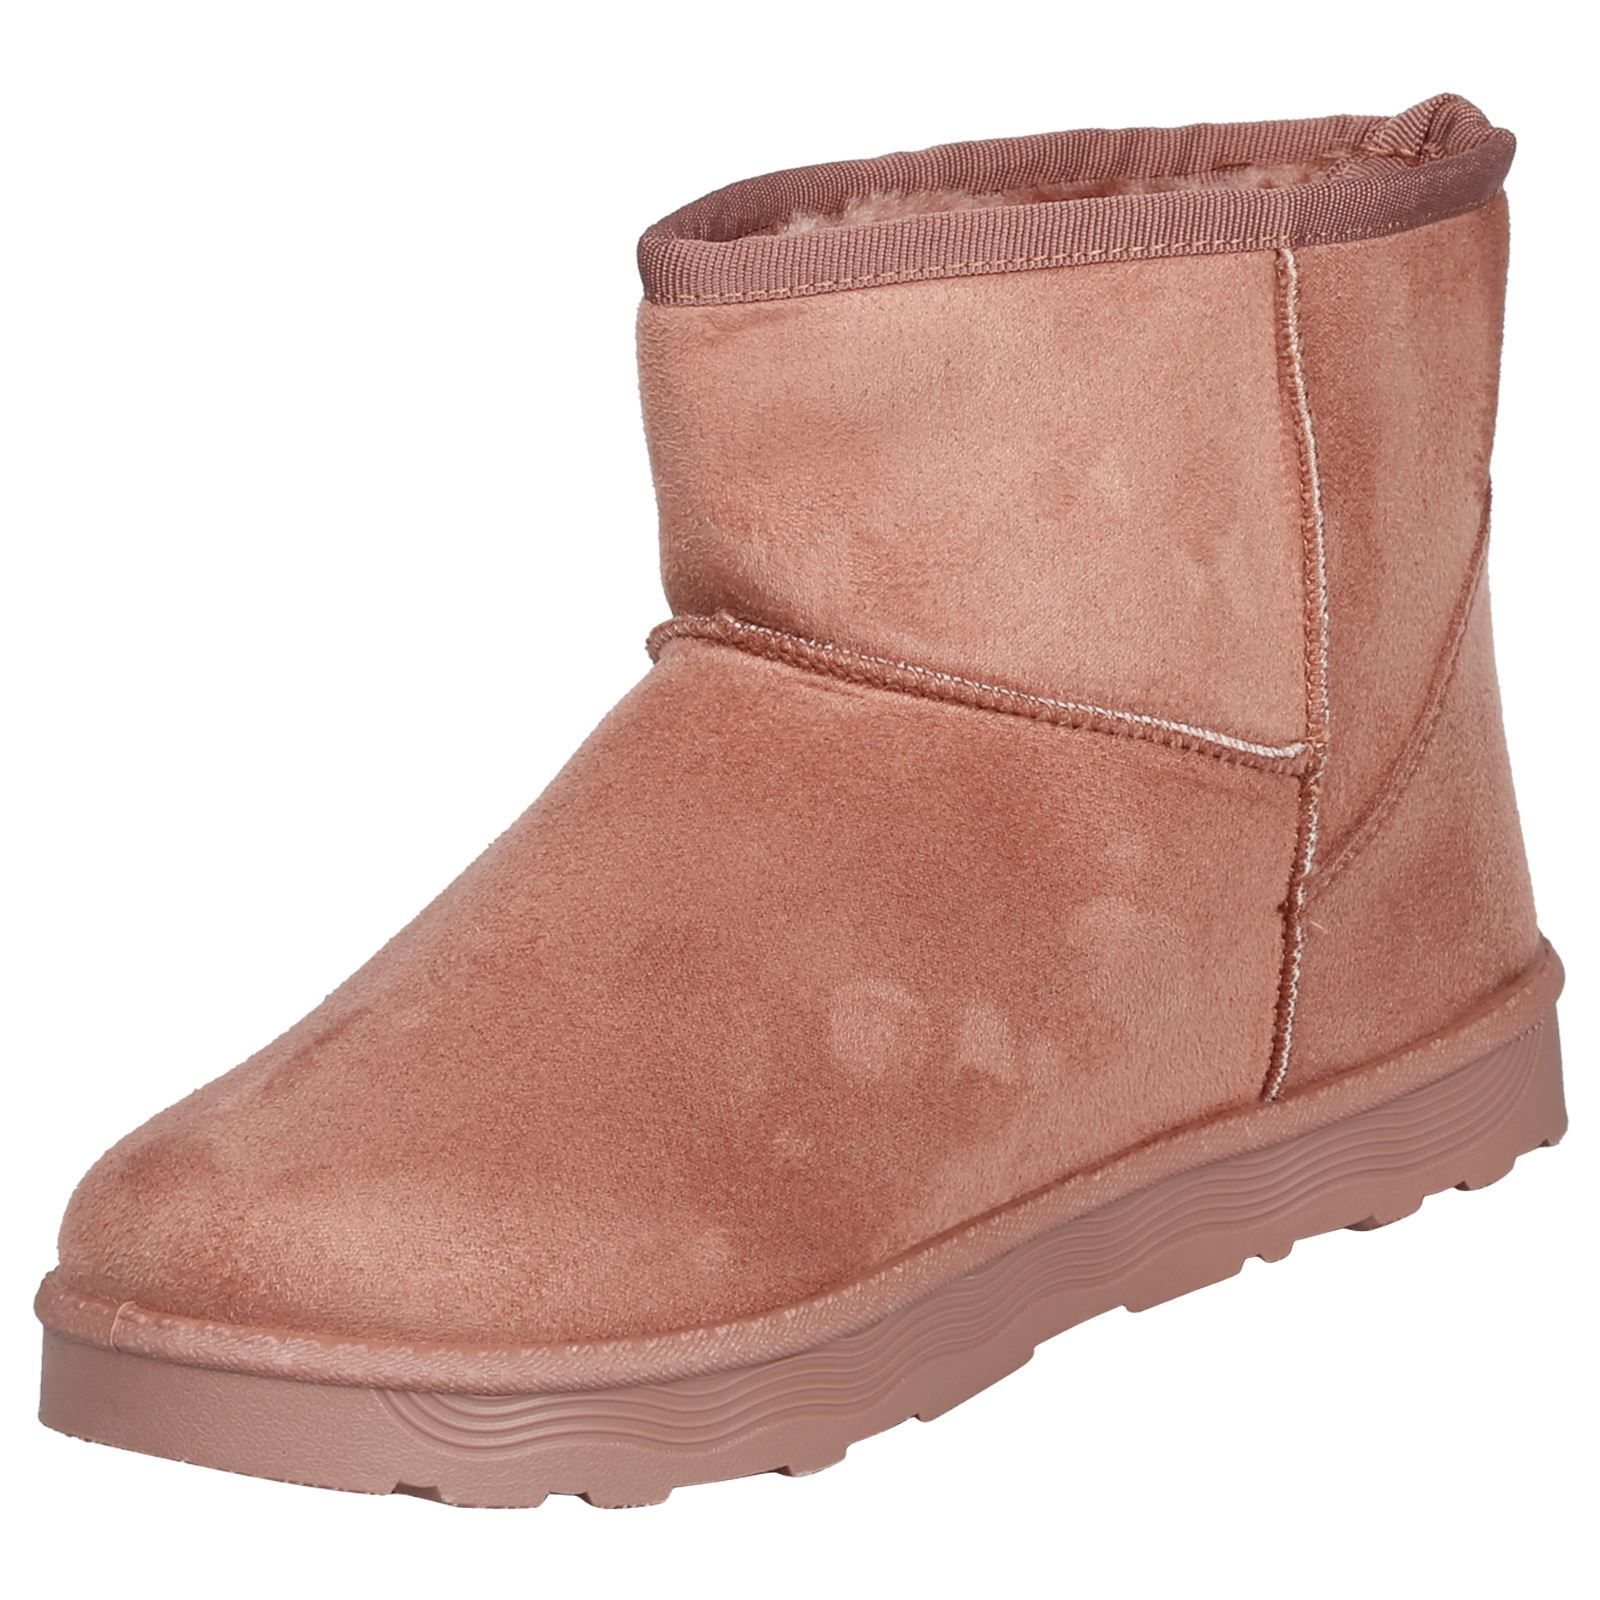 Naomi-Womens-Platfrom-Flat-Fur-Lined-Pull-On-Snug-Snow-Boots-Casual-Ladies-Size thumbnail 20